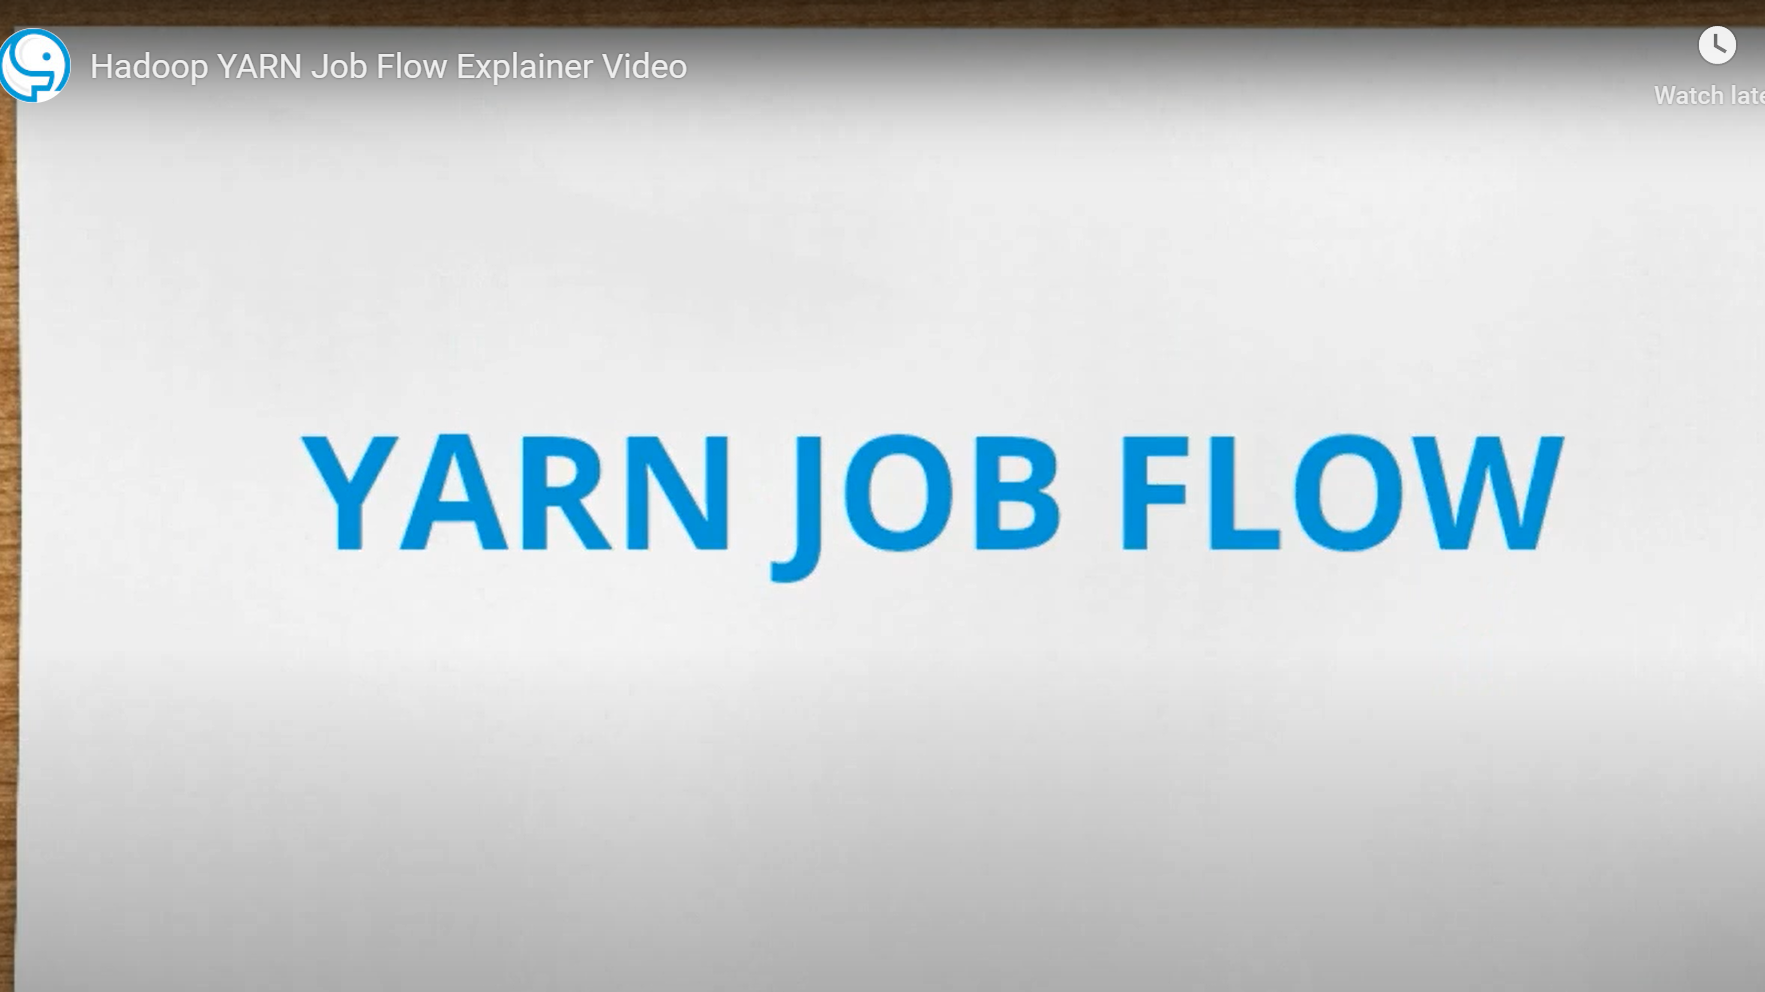 Hadoop YARN Job Flow